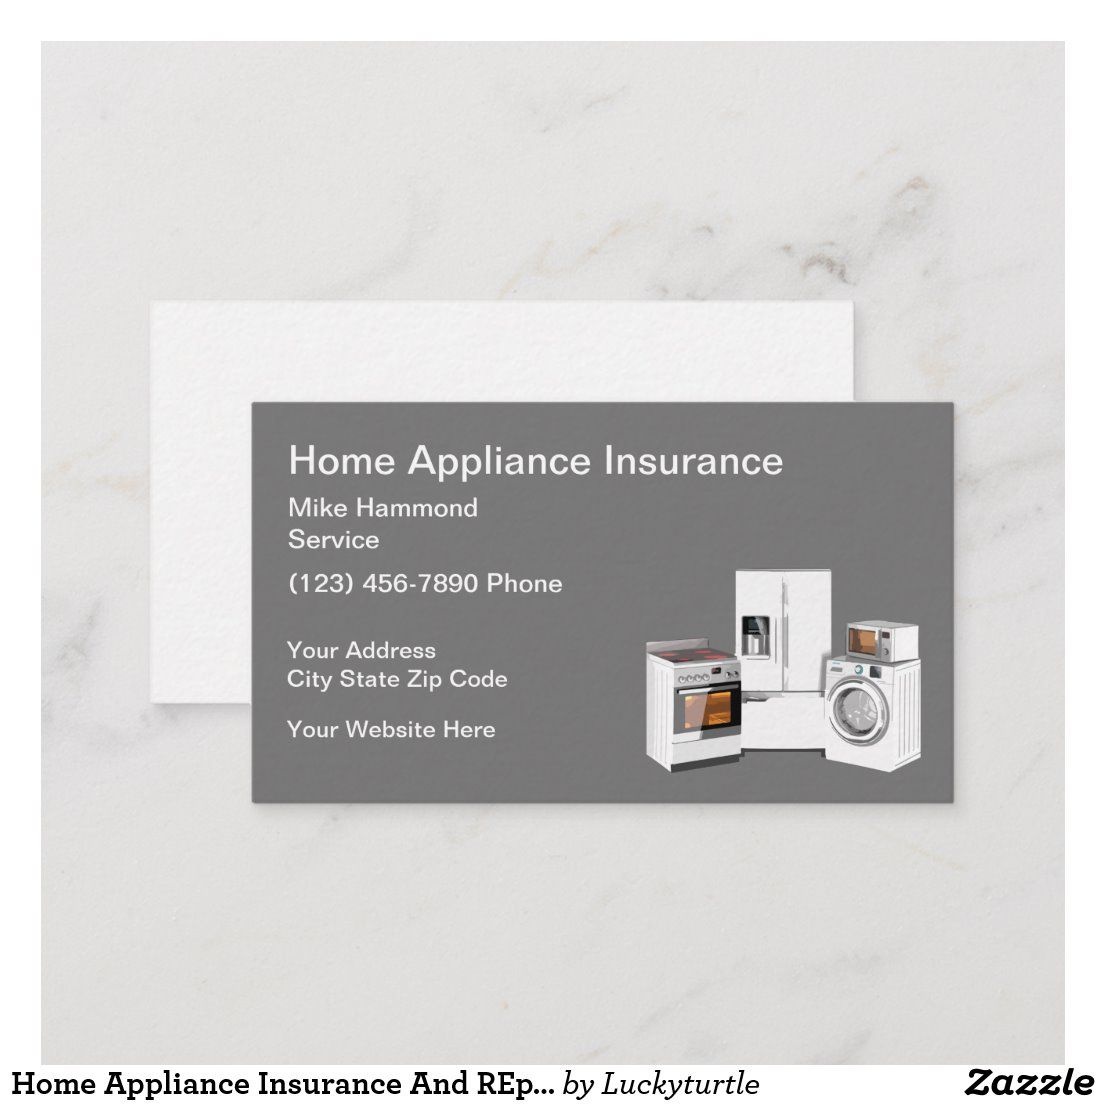 Home Appliance Insurance And REpair Business Card Zazzle